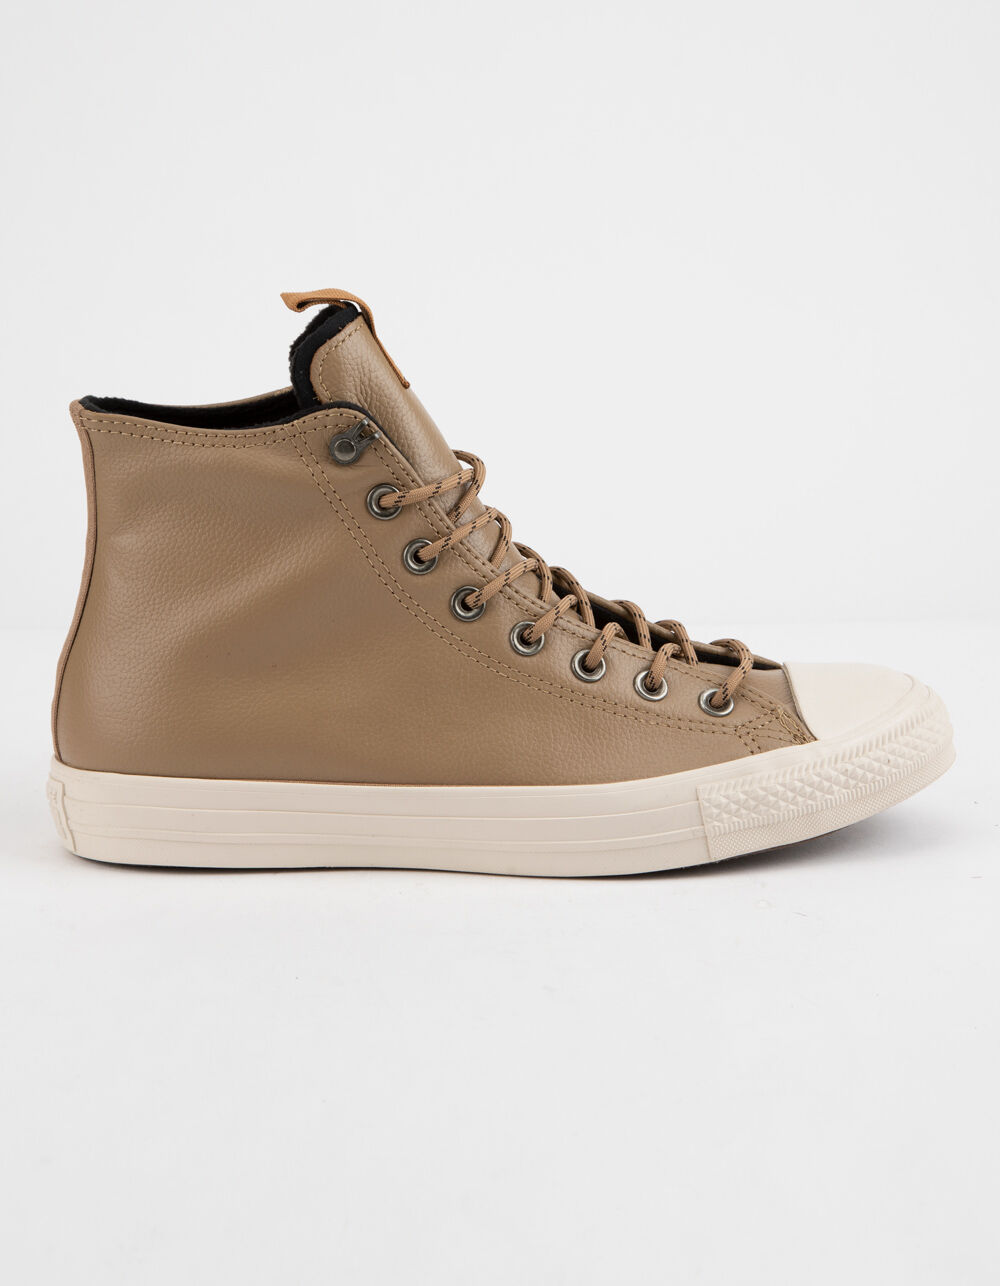 Image of CONVERSE CHUCK TAYLOR ALL STAR LEATHER TEAK & DRIFTWOOD HIGH TOP SHOES